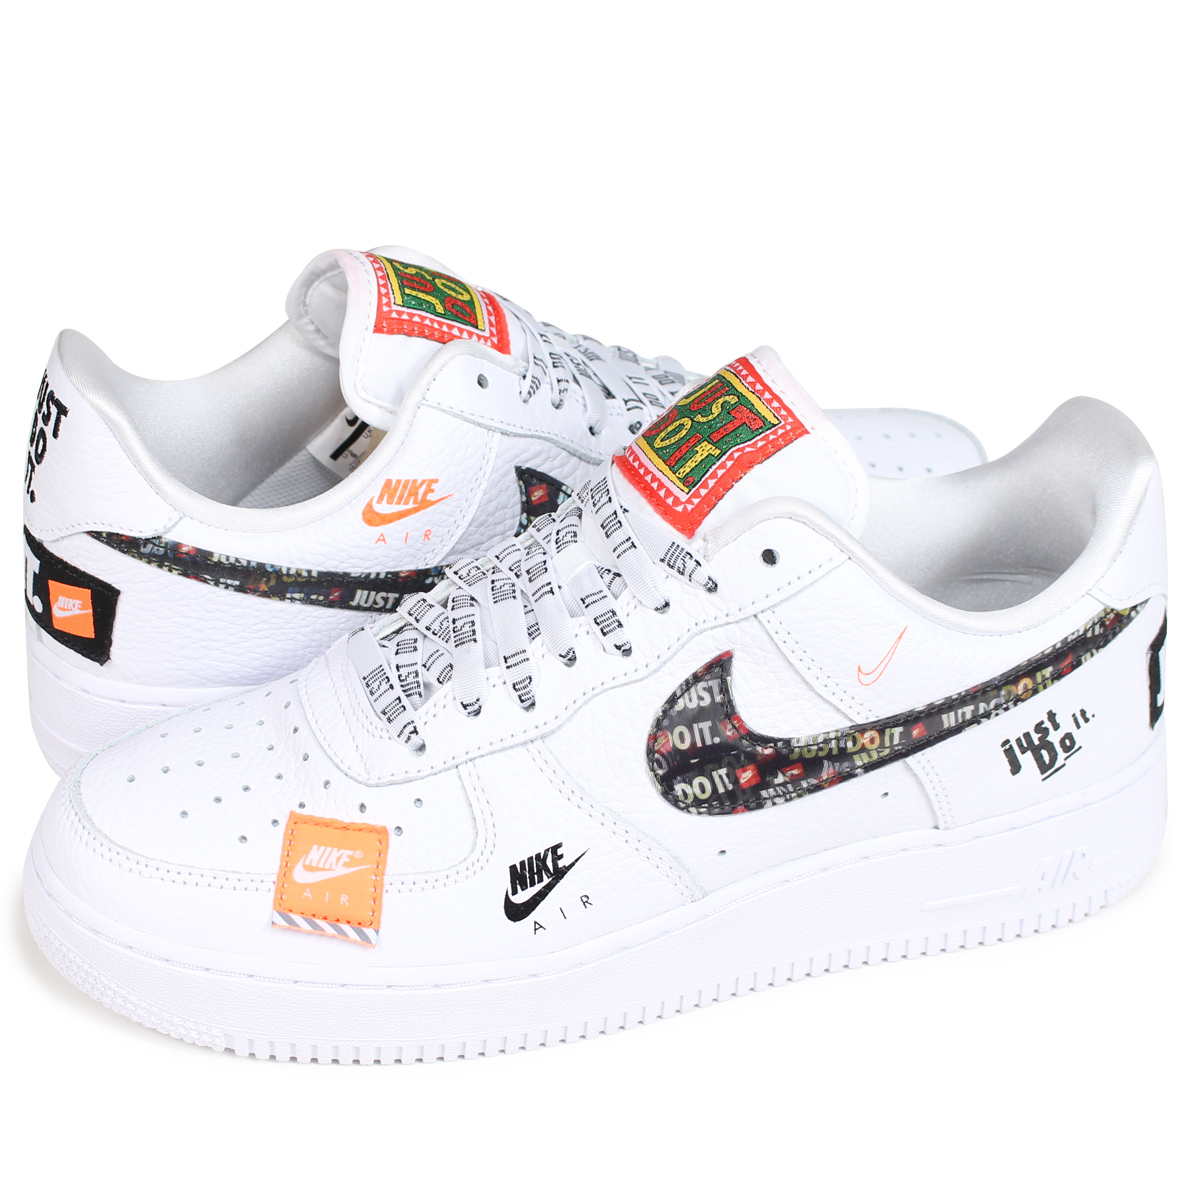 nike air force 1 just do it italia